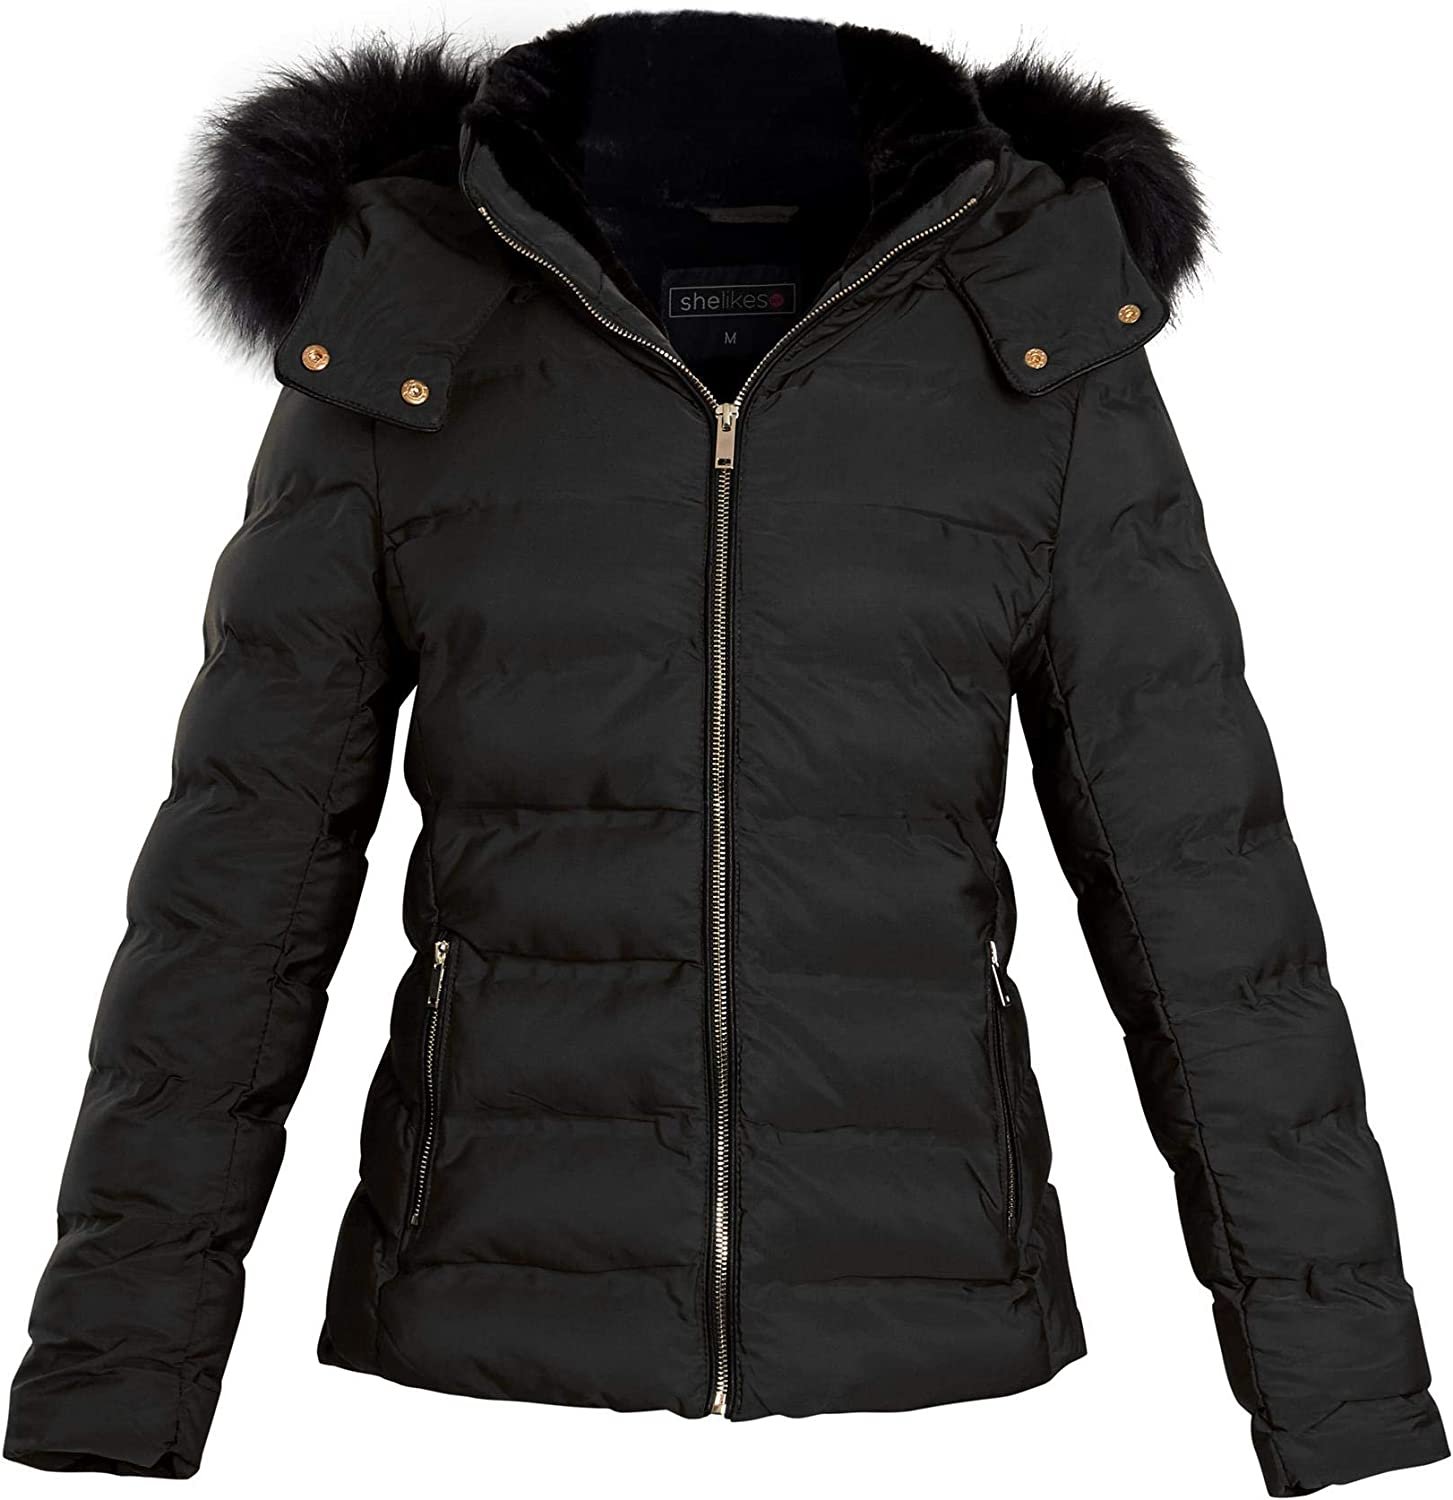 Shelikes Womens Ladies Quilted Faux Fur Hood Hooded Padded Winter Jacket Coat